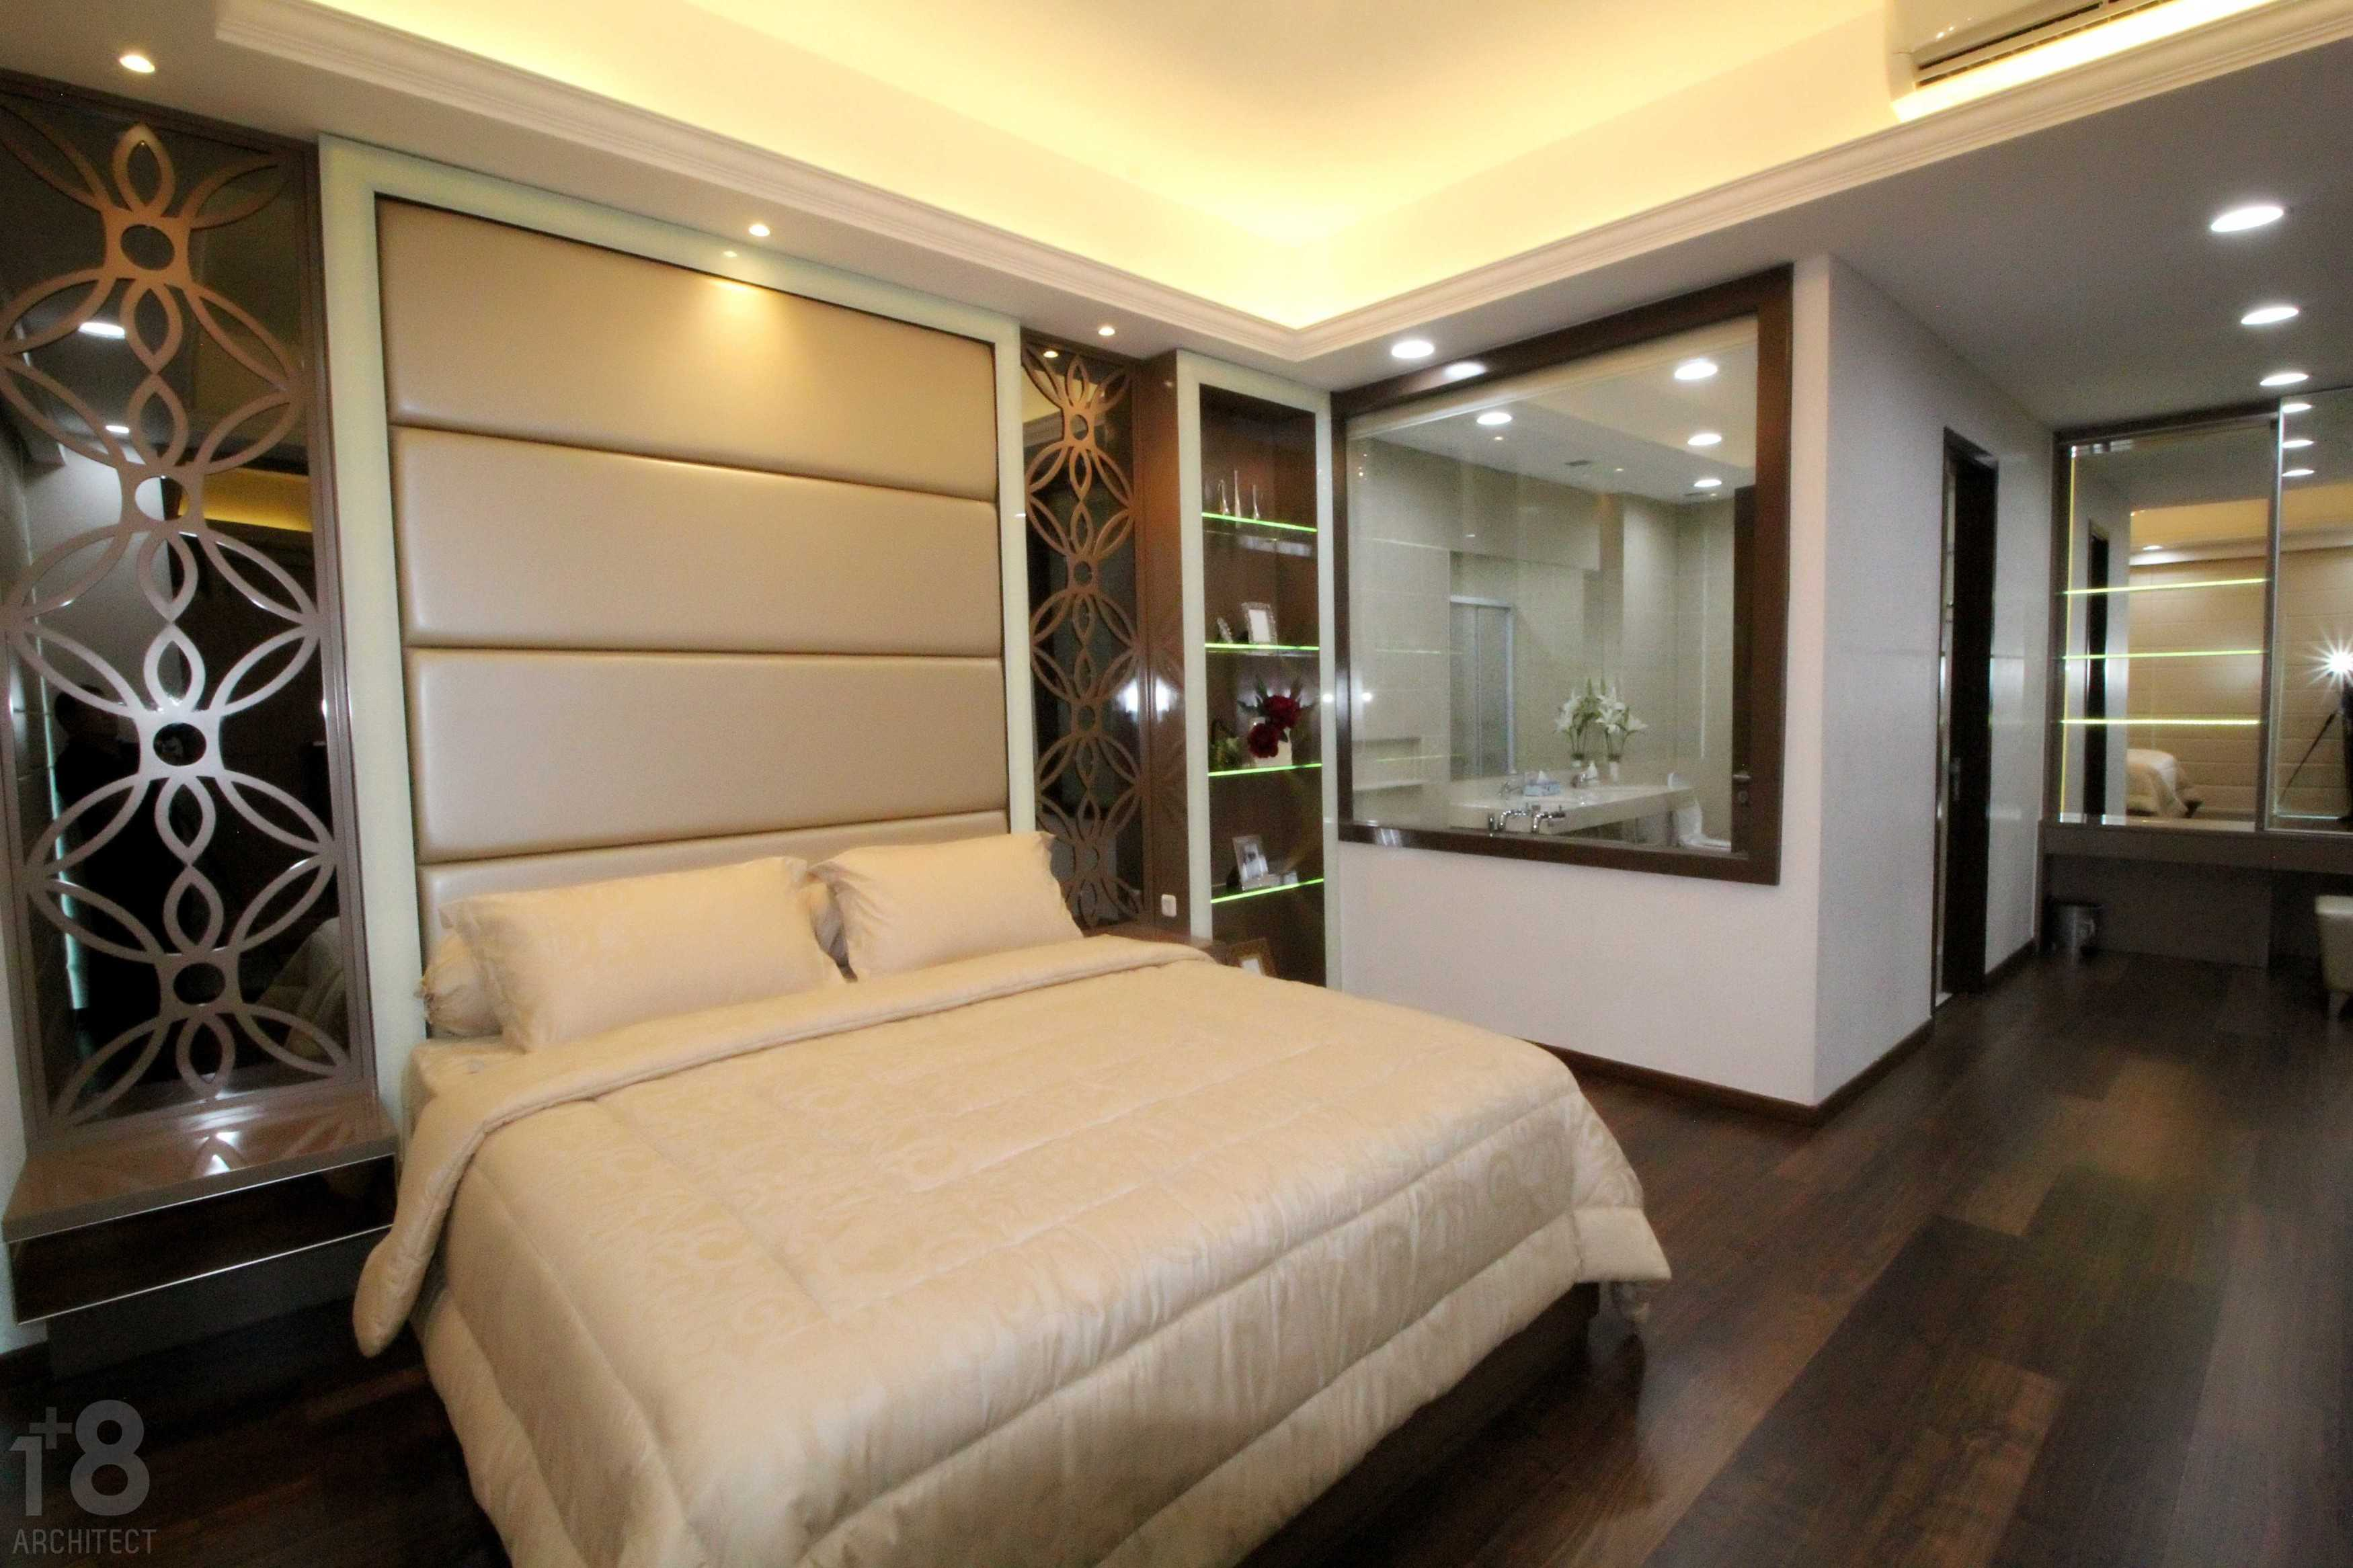 1+8 Architect St. Moritz, Presidential Tower Suite Room Jakarta, Indonesia Jakarta, Indonesia Bedroom Modern  23005